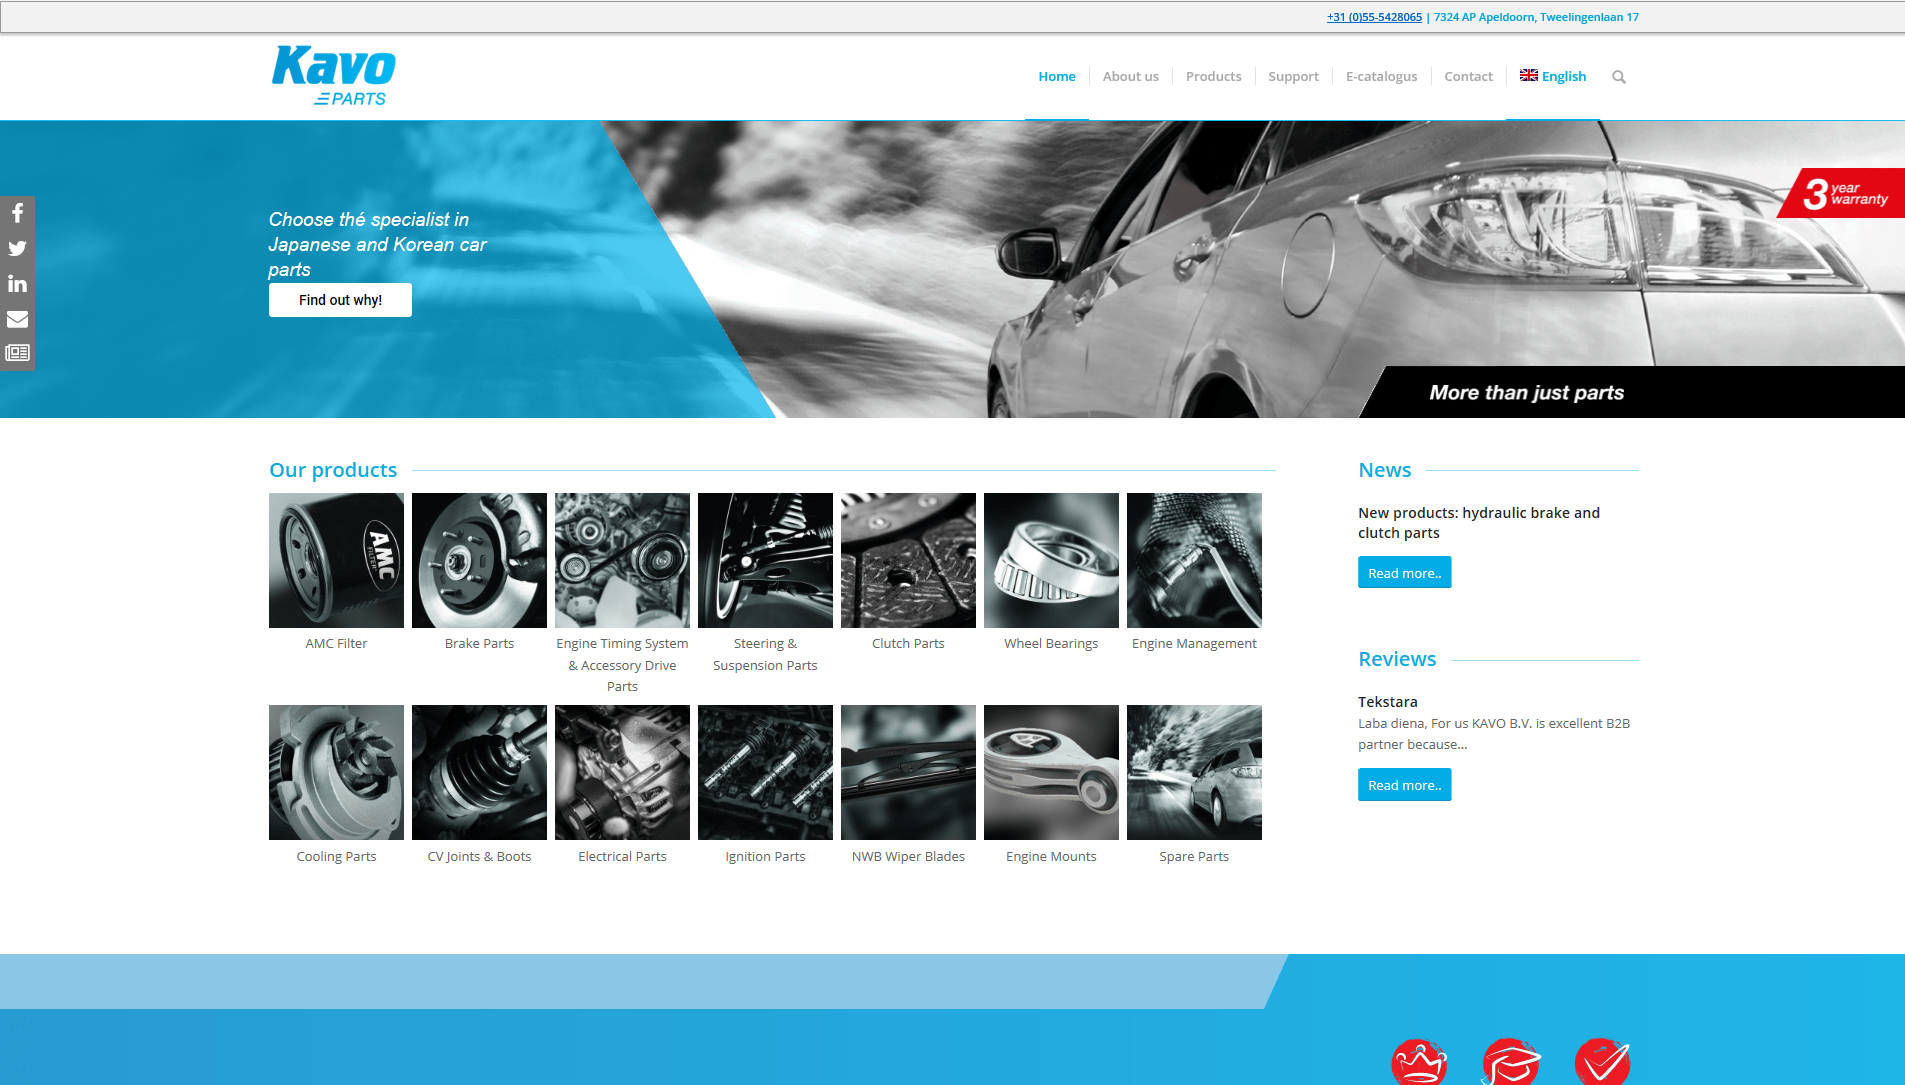 Your specialist in Asian car parts - Kavo Parts